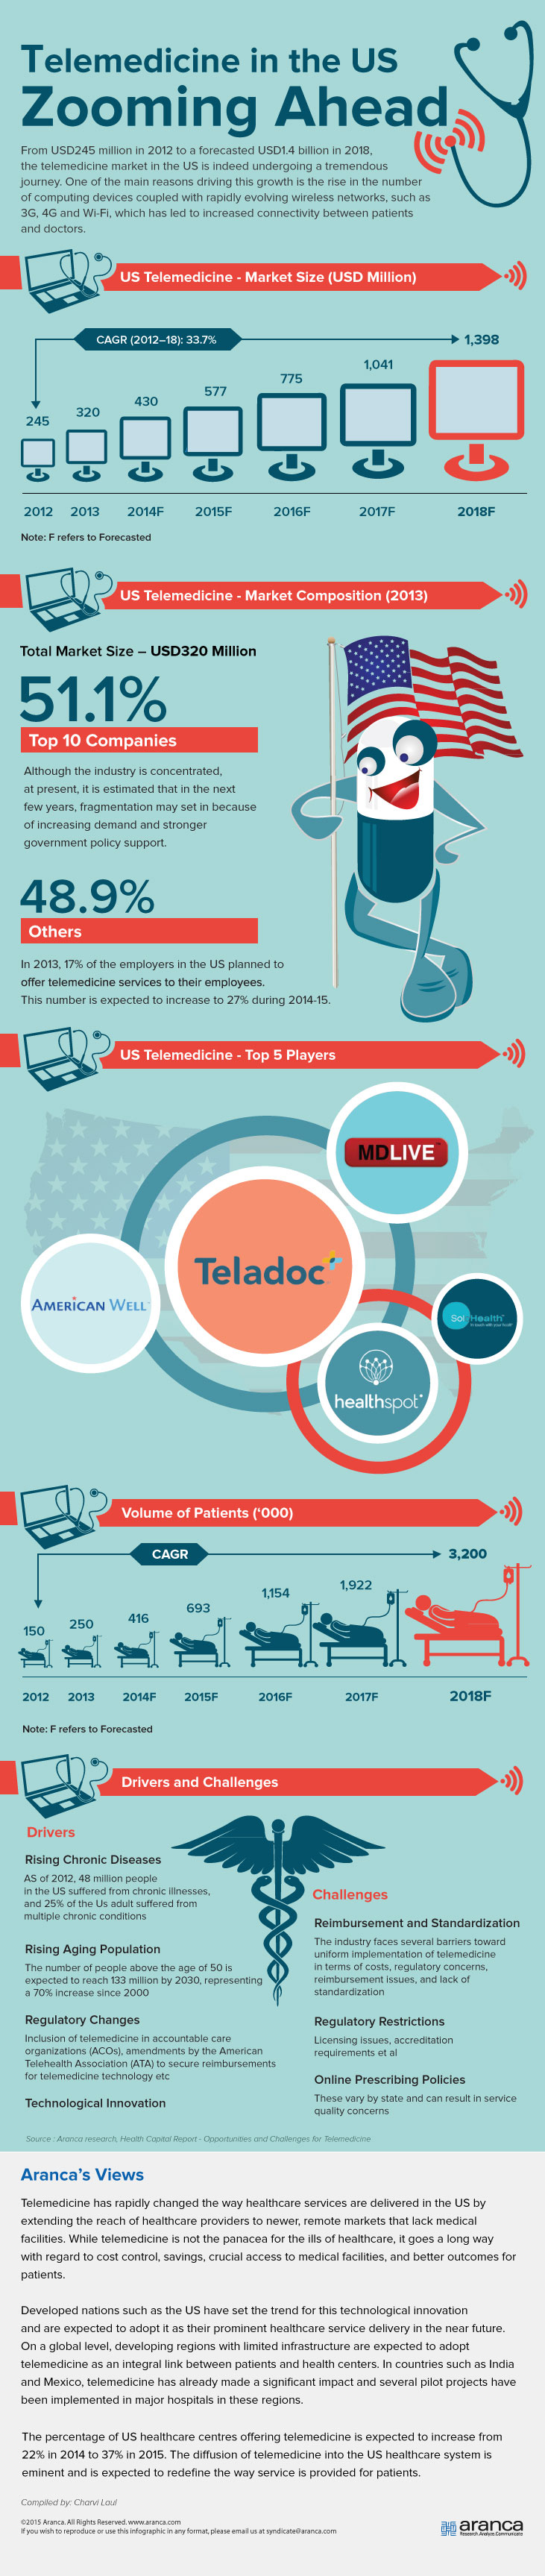 US Telemedicine Market Research